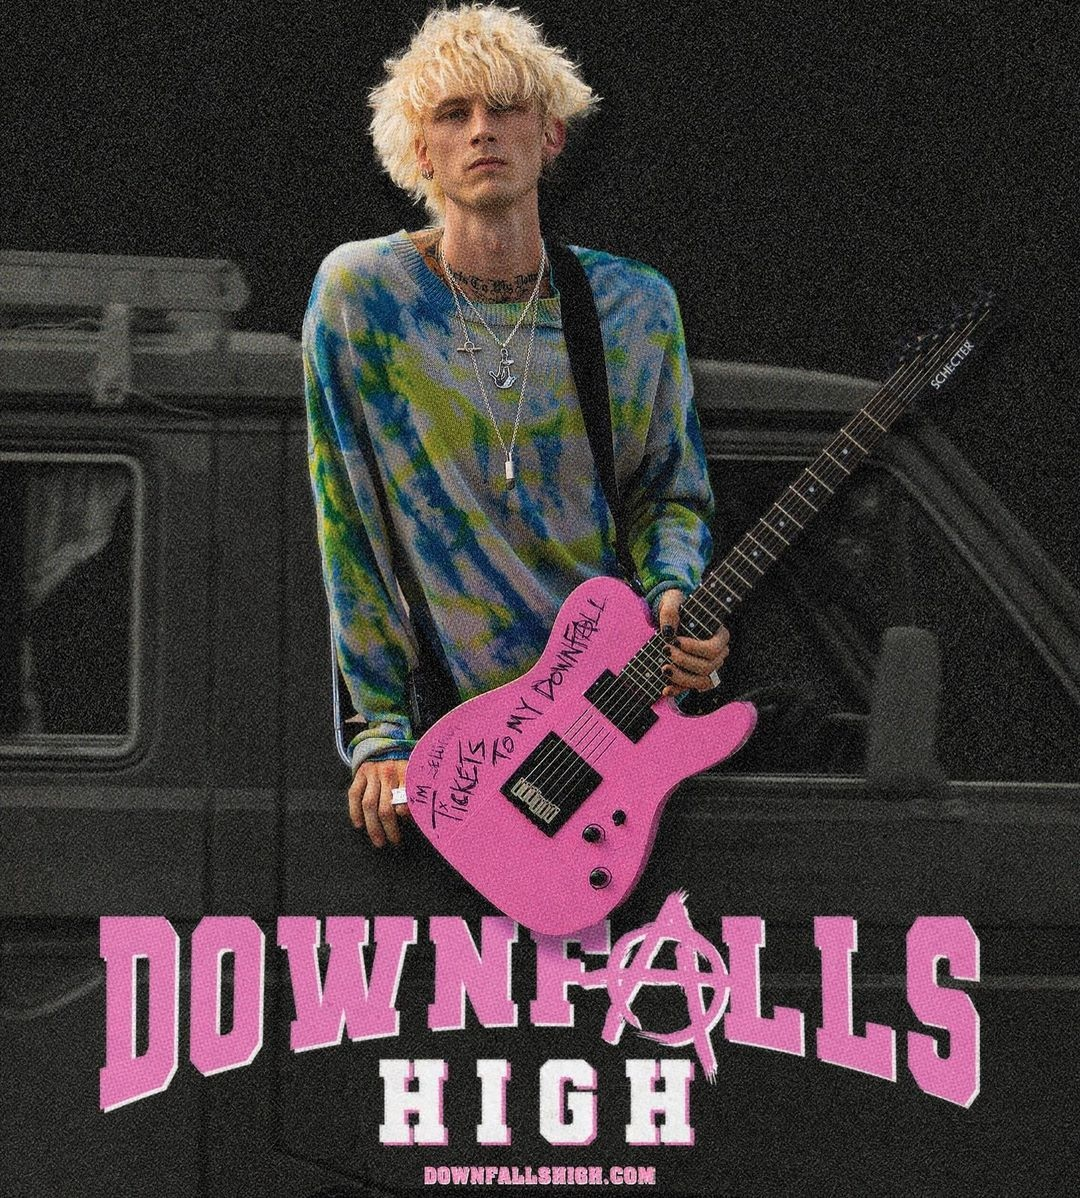 .@MachineGunKelly's one-of-a-kind musical #DownfallsHigh is out now! Available to watch on Youtube or through the link in our bio 💥  https://t.co/a0dcneIhJk  #MachineGunKelly https://t.co/YzJP97D2ud